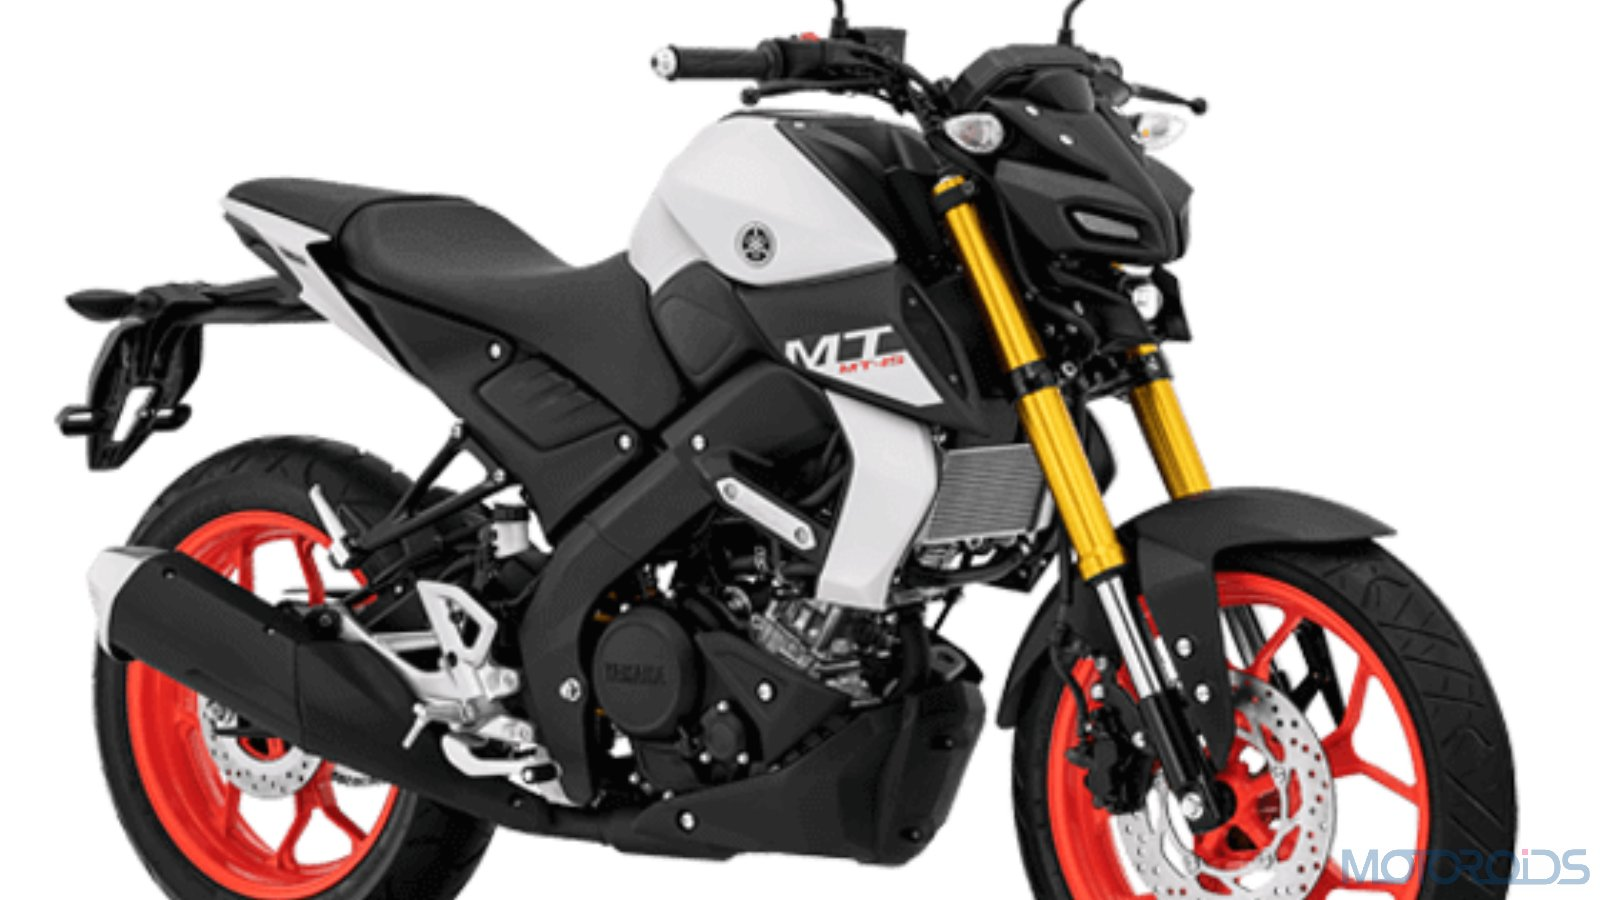 Yamaha Mt 15 To Be Launched On March 15th What To Expect